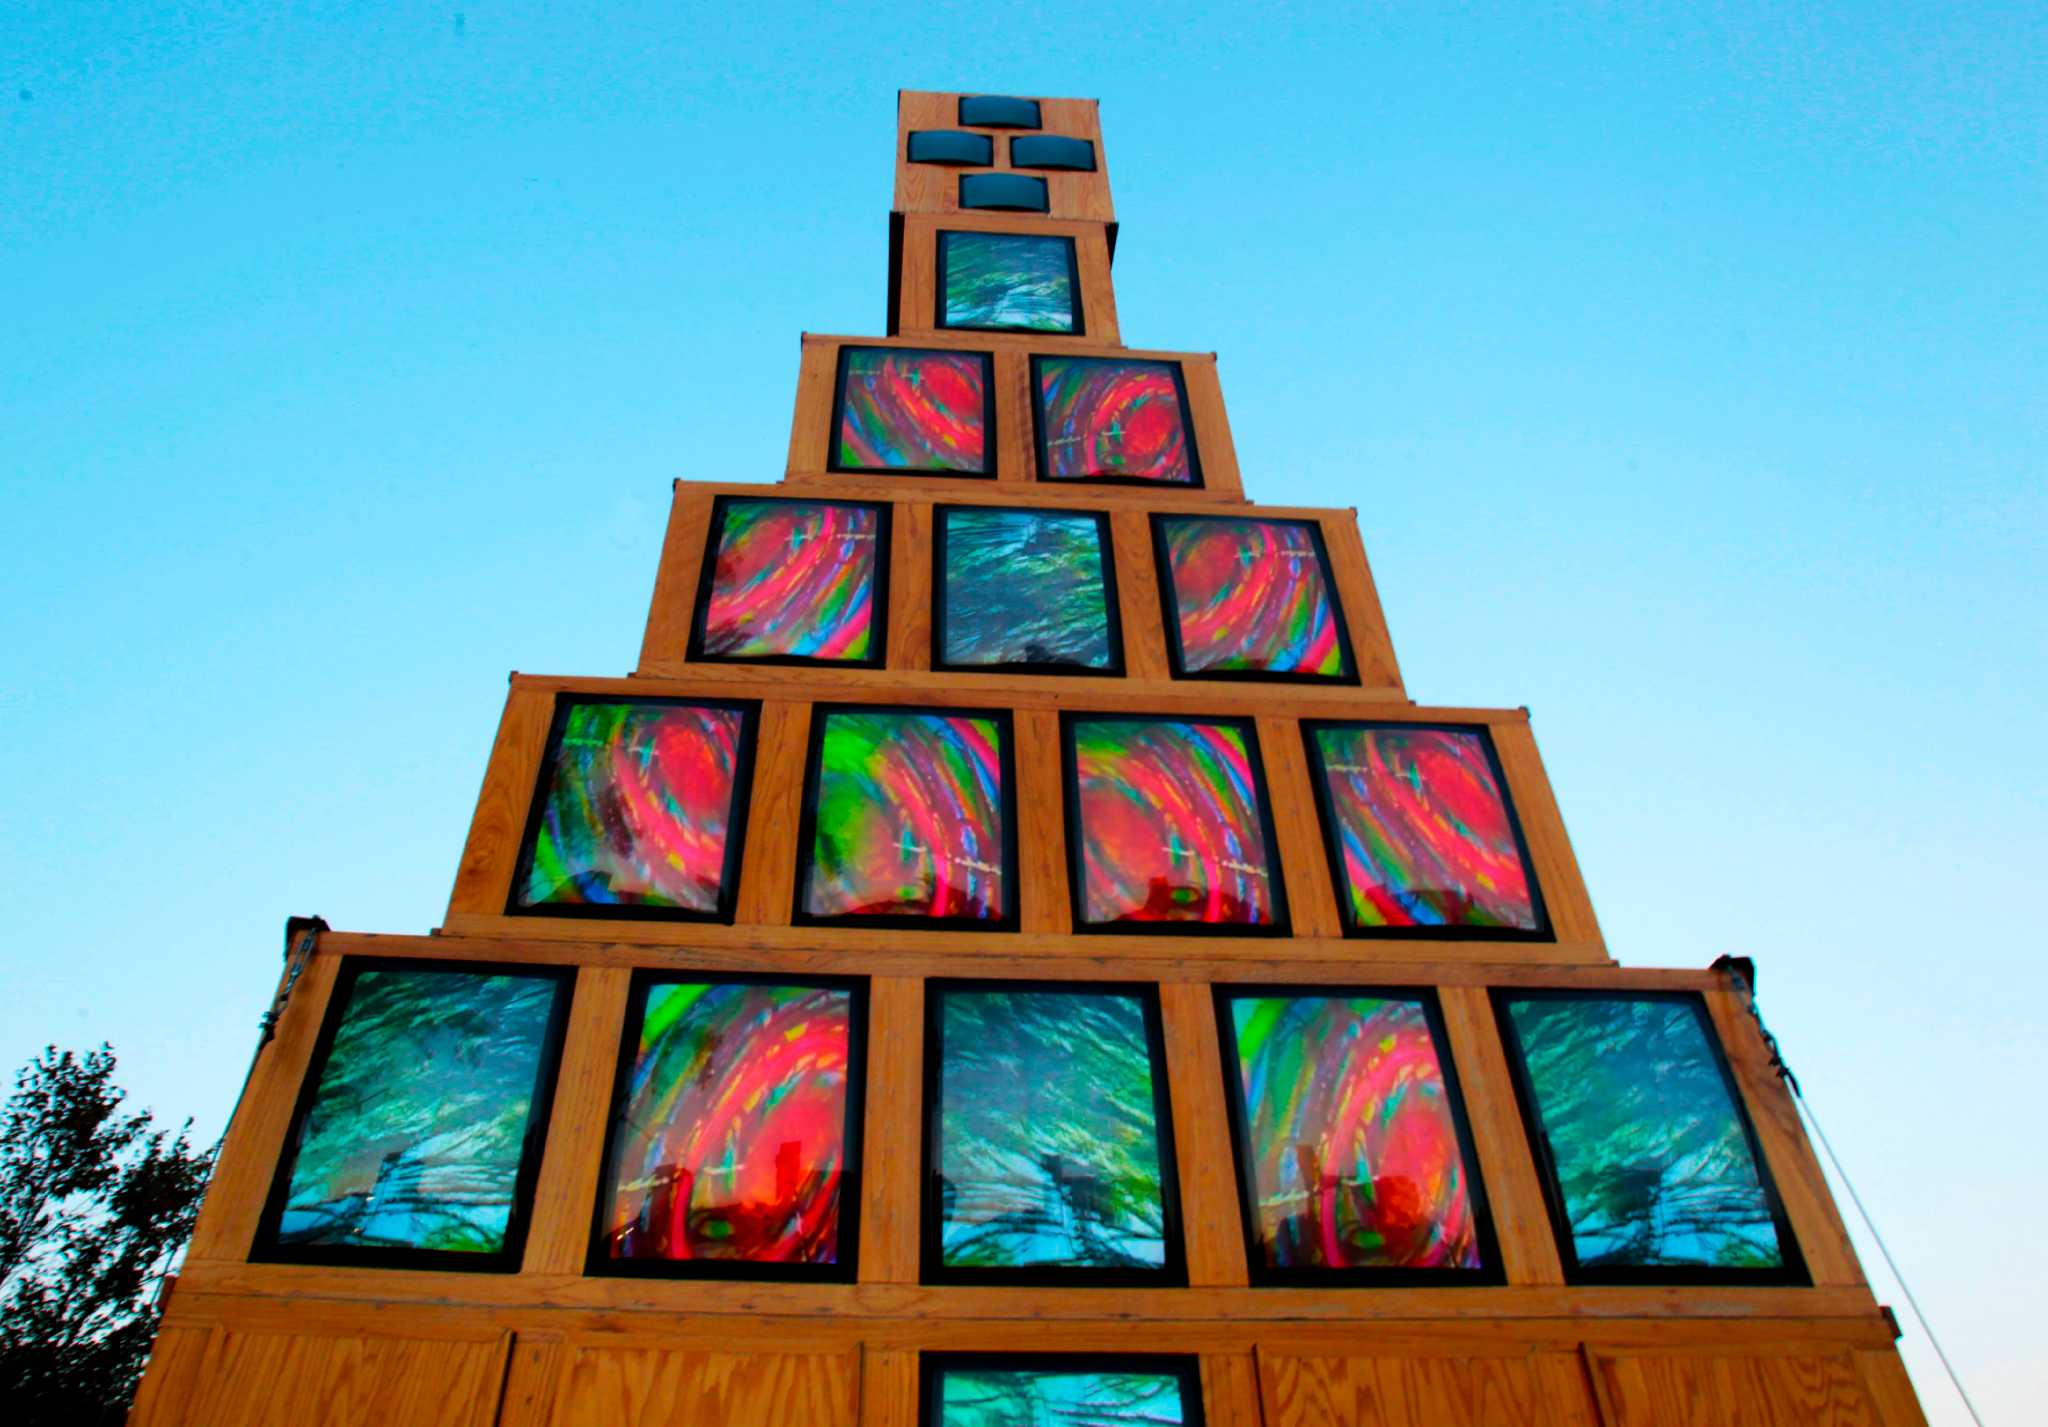 The Christmas-tree screens are cheerful and bright again ...